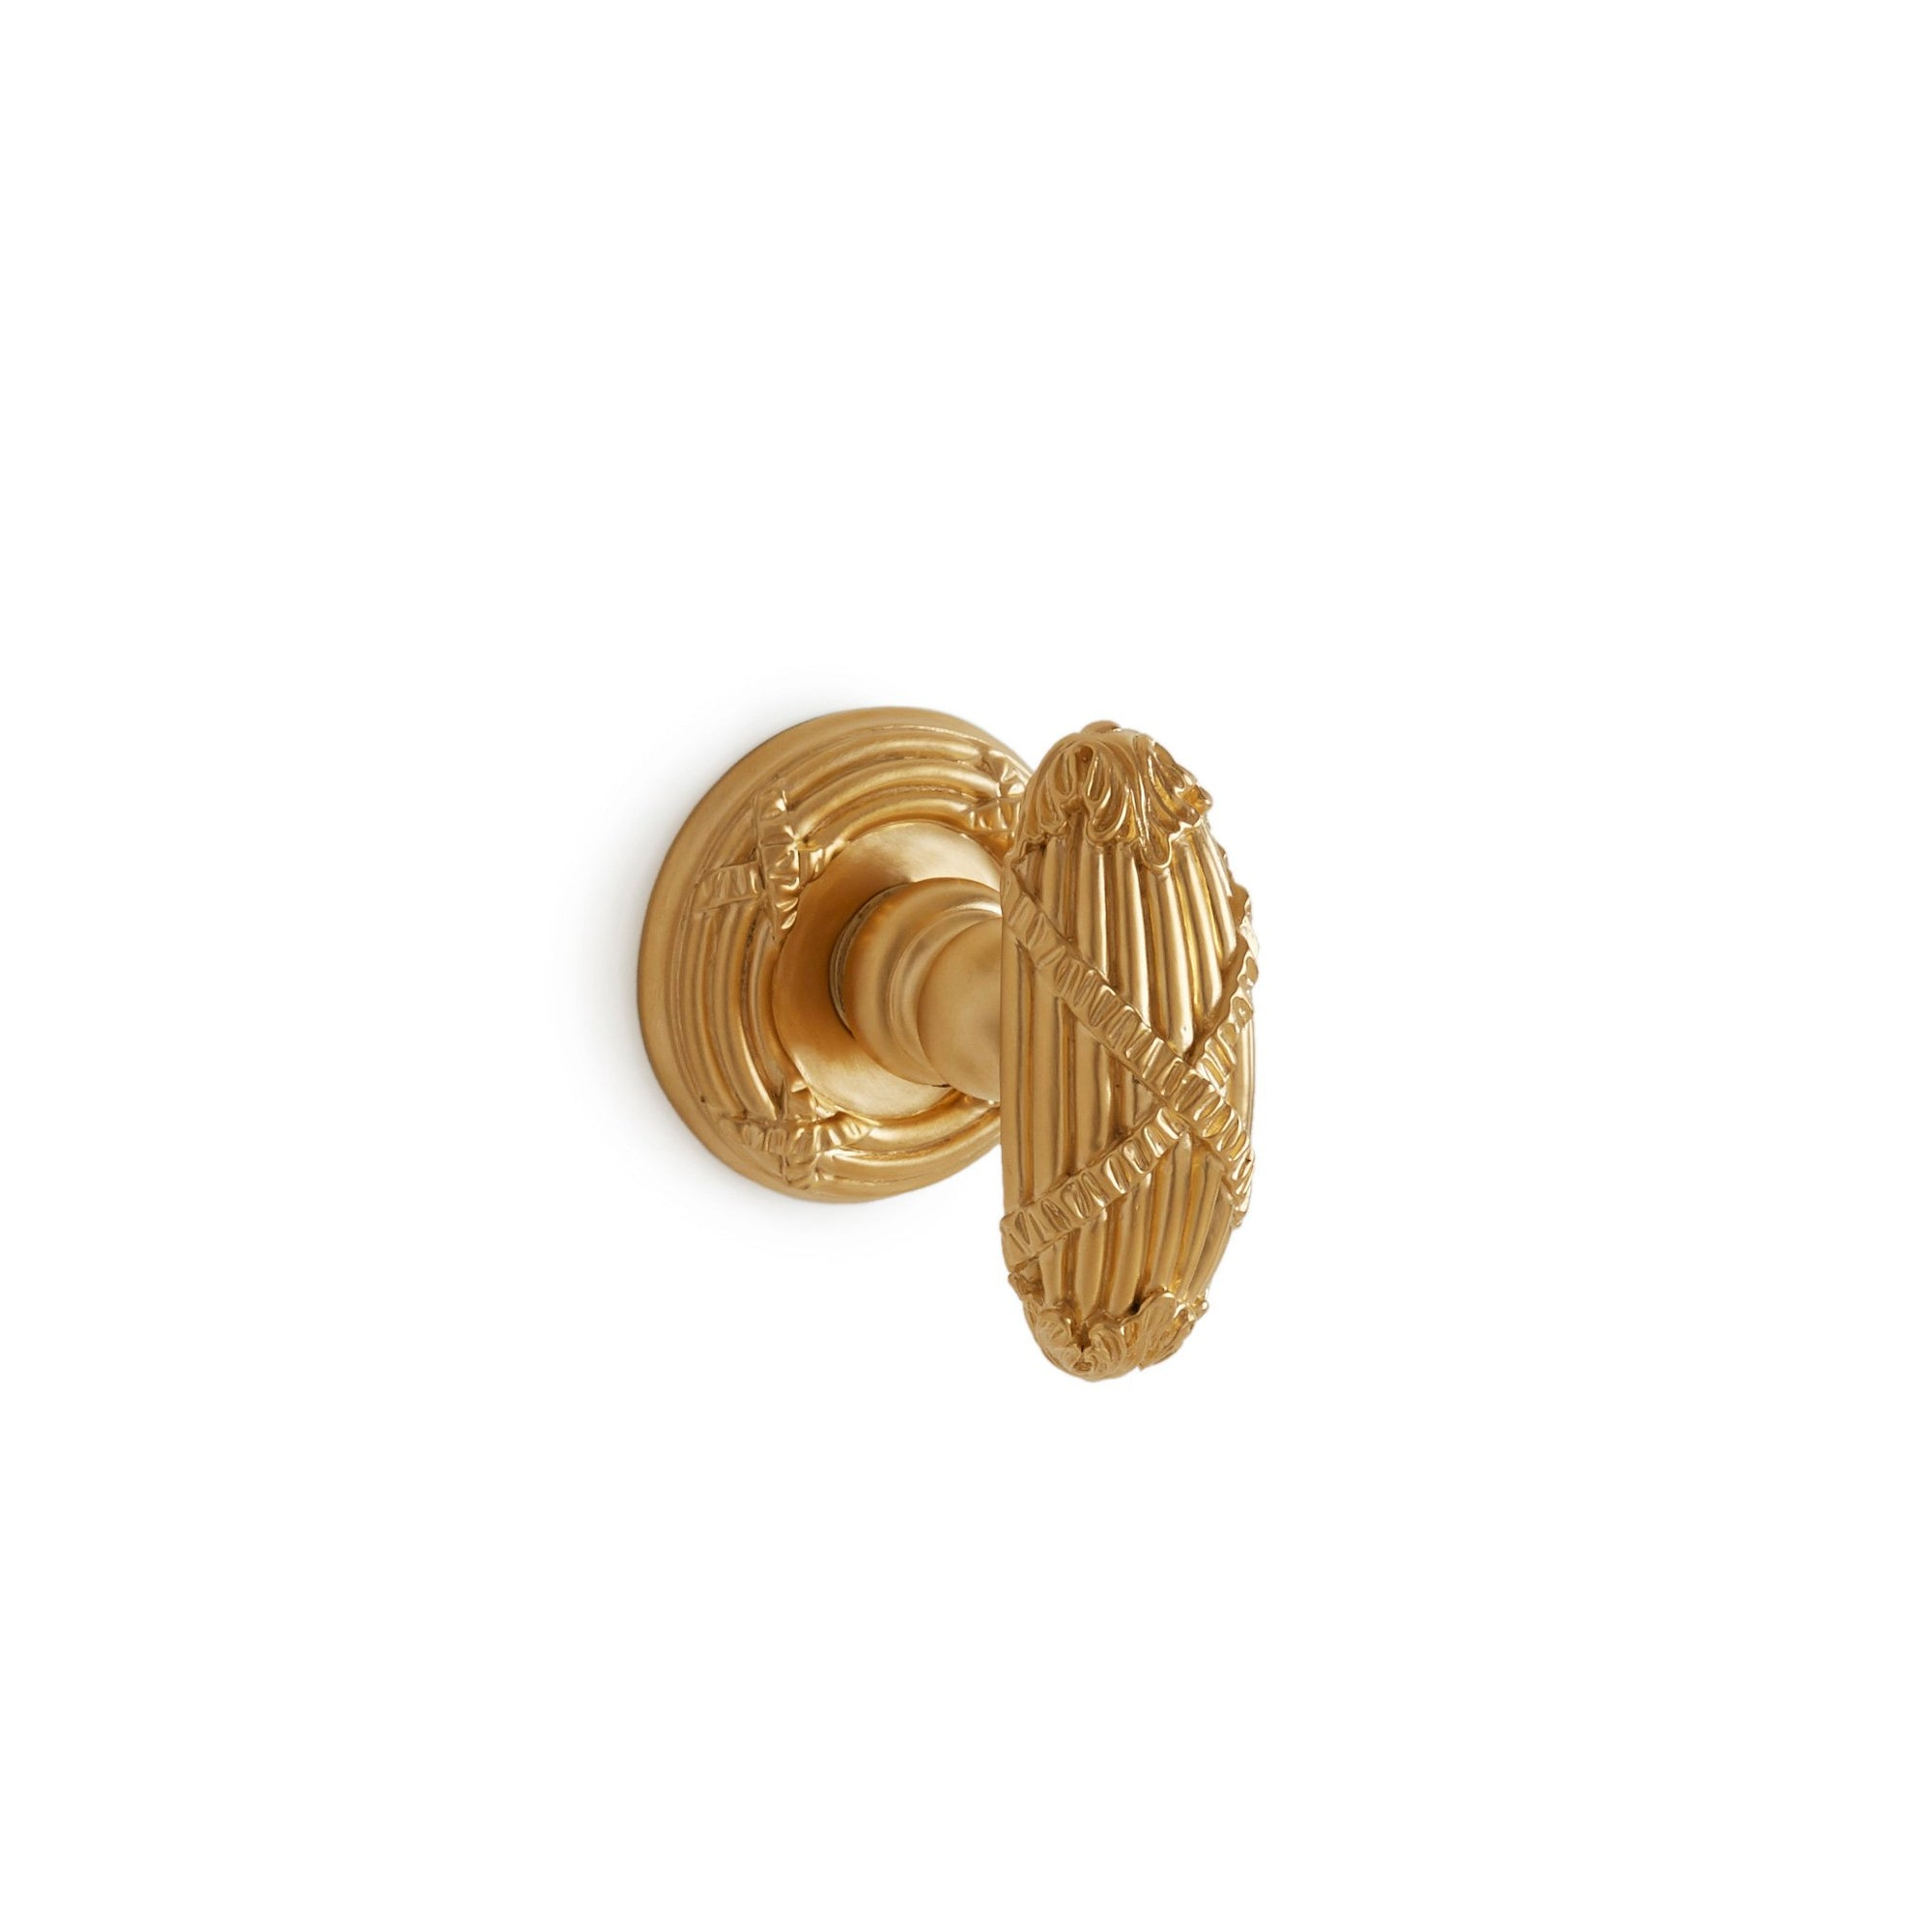 0055DOR-GP Sherle Wagner International Ribbon & Reed Door Knob in Gold Plate metal finish